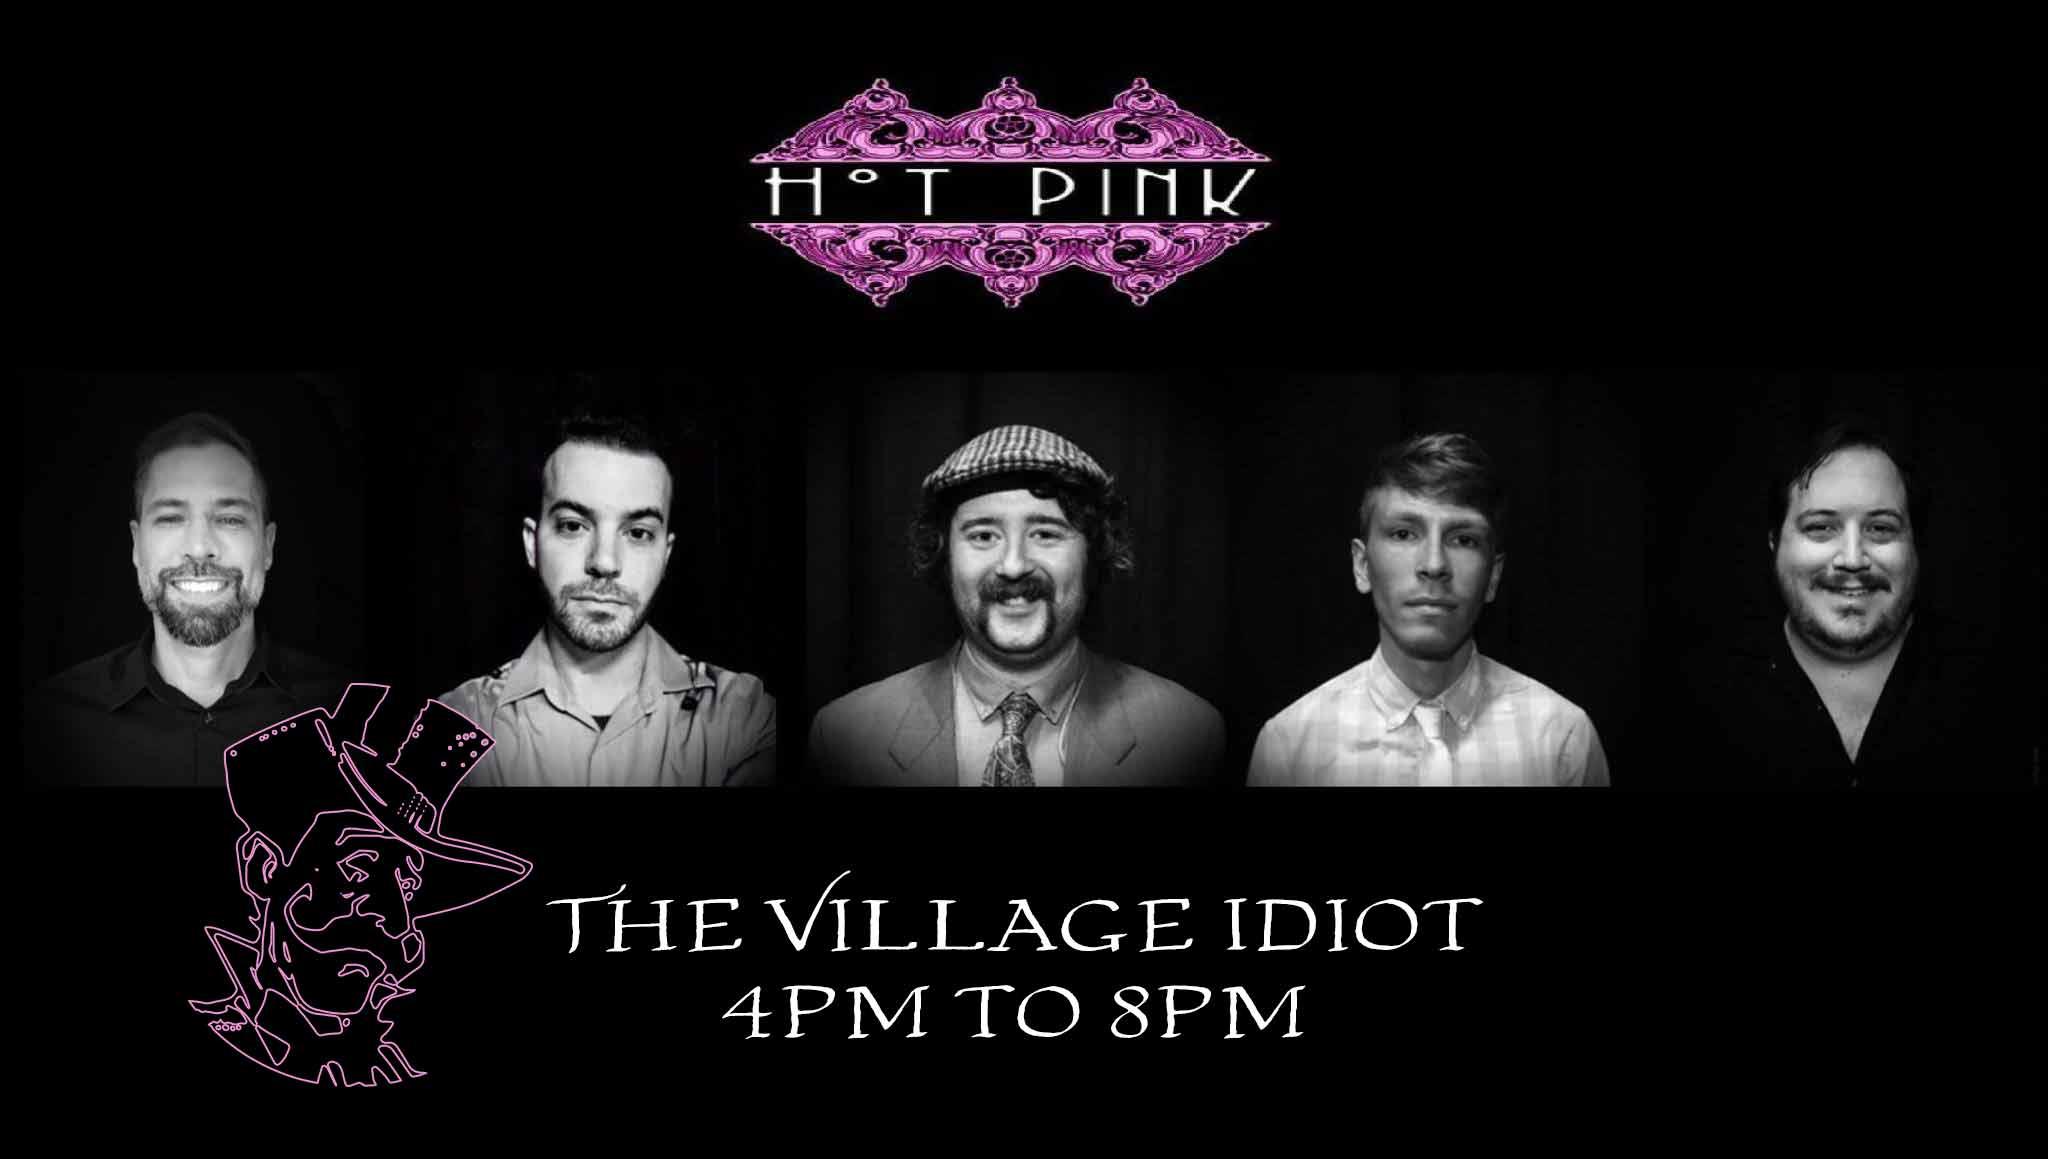 Hot Pink Performing 4pm to 8pm September 29 2019 at Village Idiot Pub